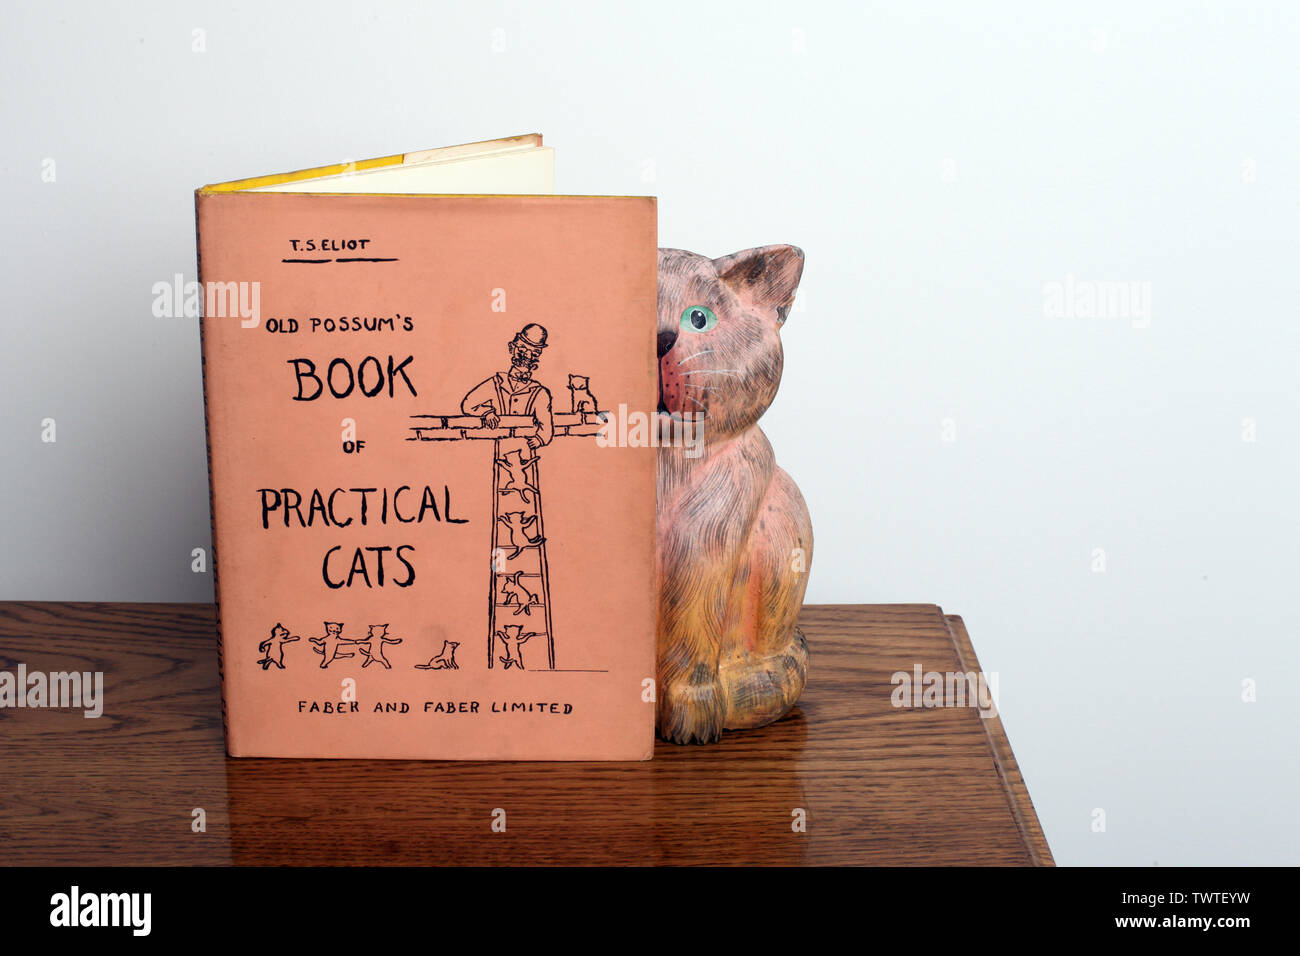 Old Possums Book of Practical Cats - A book of poems by T.S. Eliot with statue of a curious cat on a wooden coffee table - Stock Image